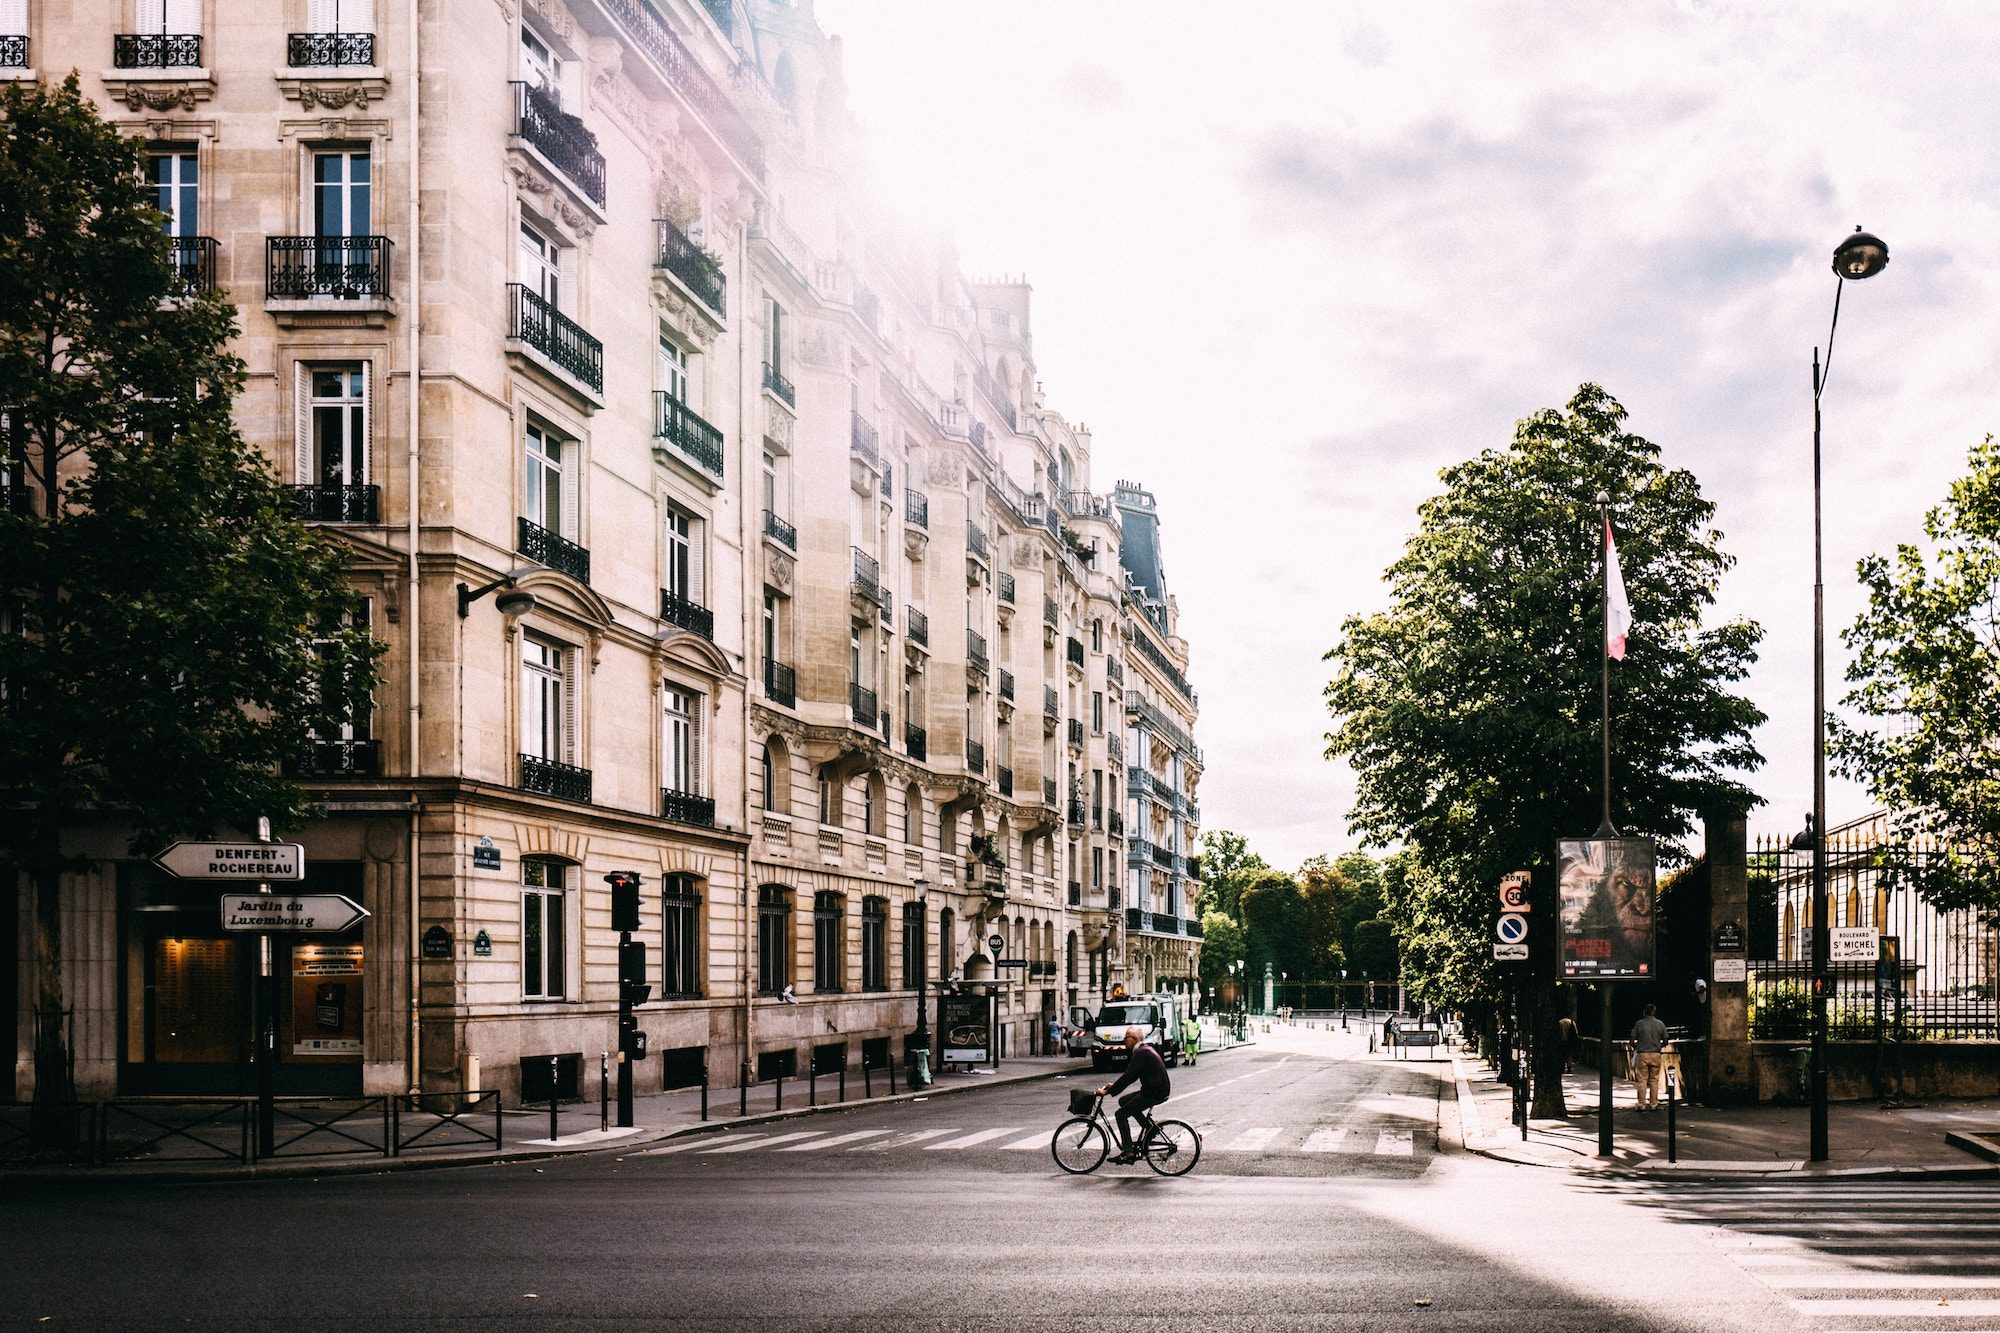 Cycling in France is becoming the norm, especially in Paris where cycle lanes are becoming more common, as after all, cycling is the best way to explore the Haussmann architecture.